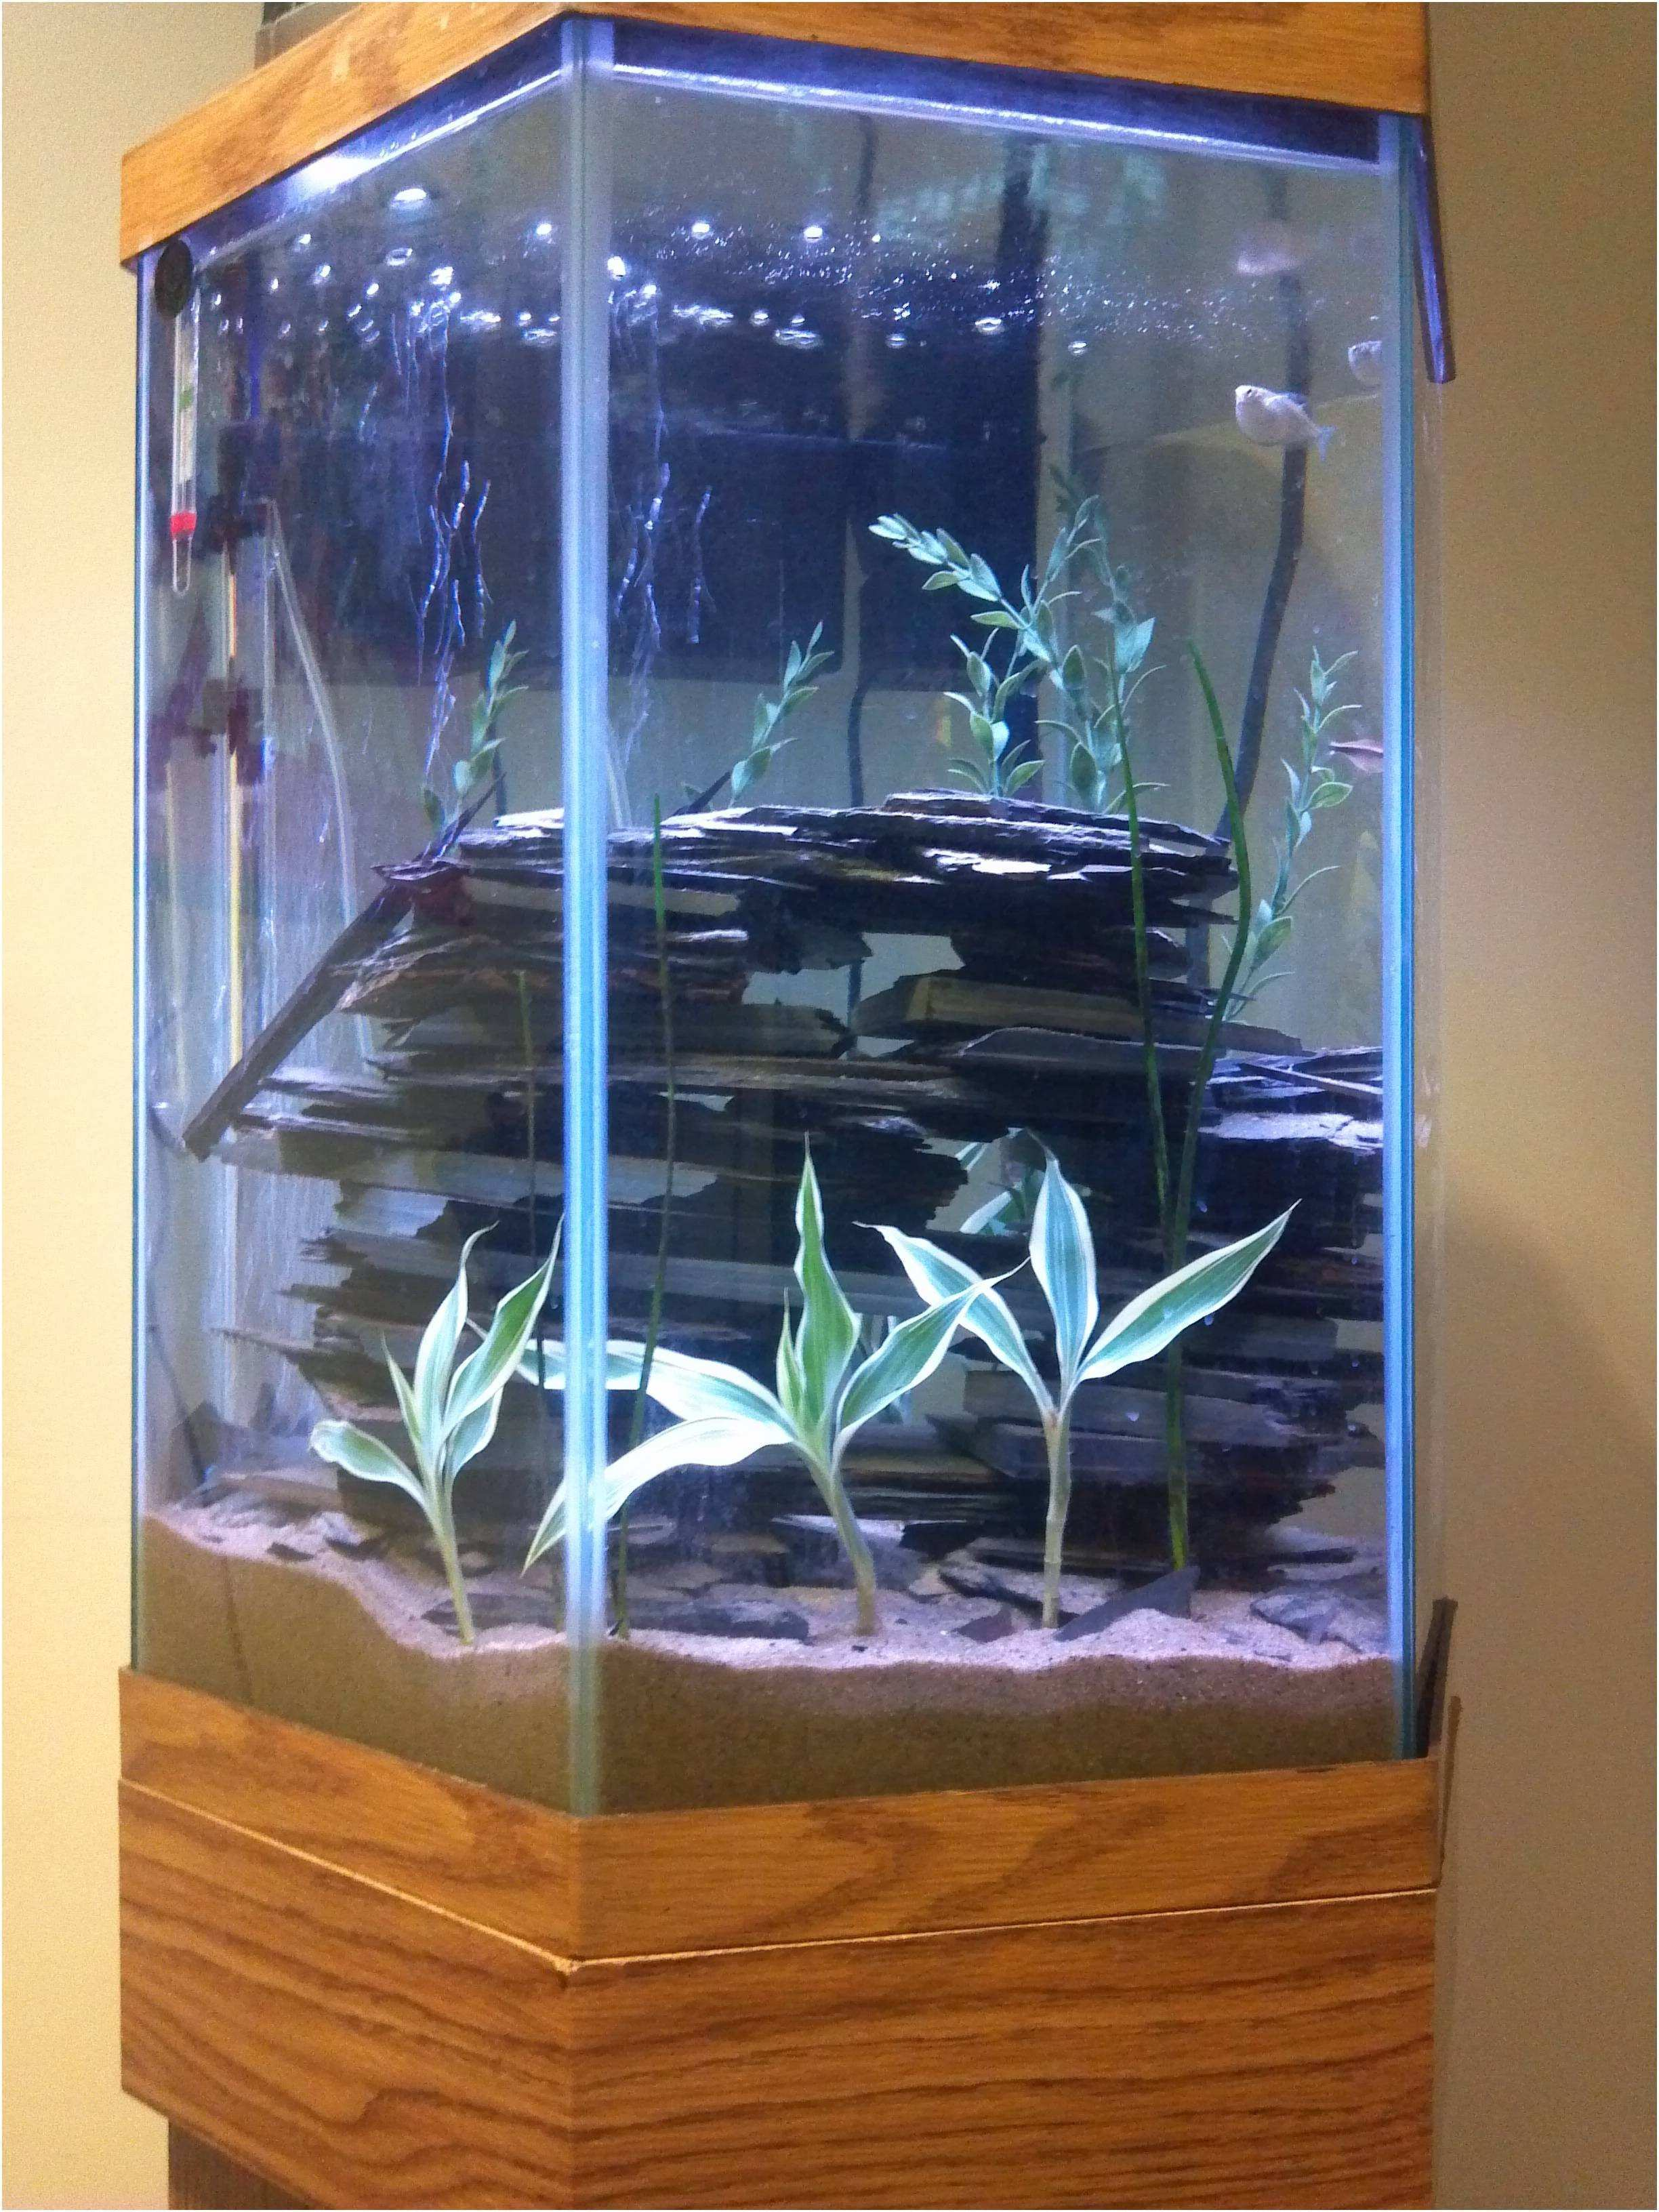 Home Design Tall Fish Tank Inspirational Tall Low Light Aquarium